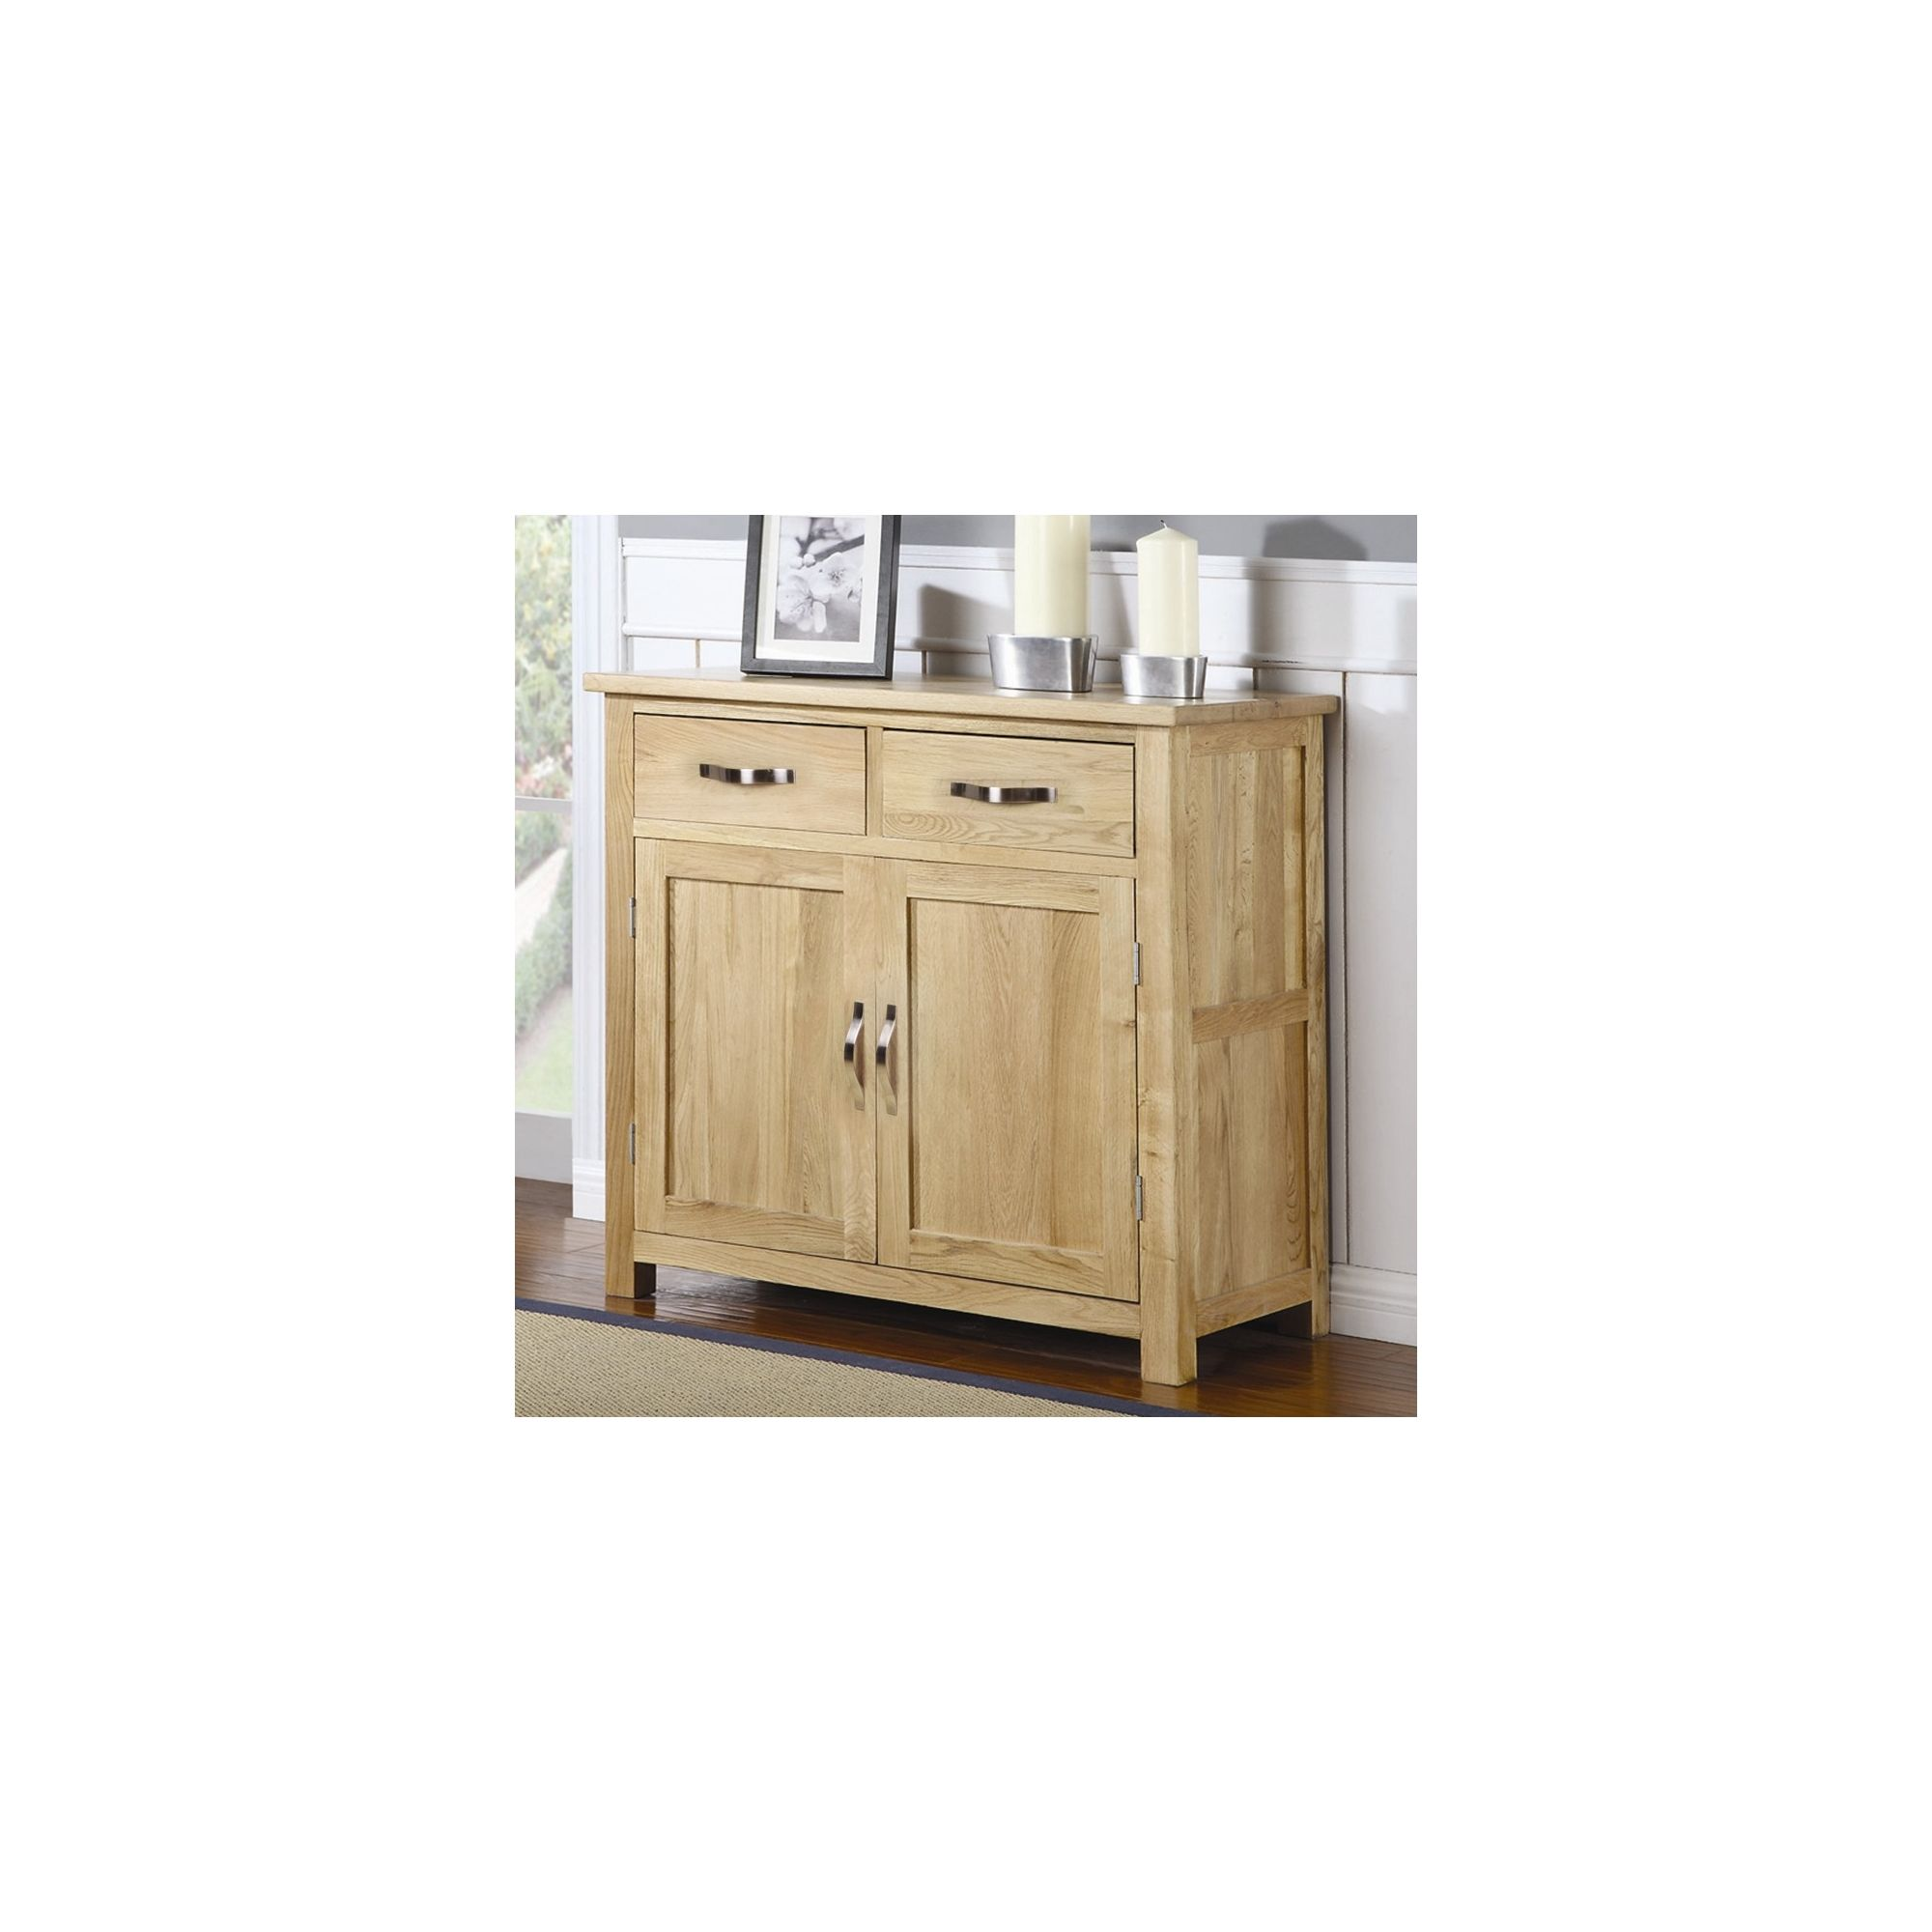 Shankar Enterprises Oaken Medium Sideboard at Tescos Direct